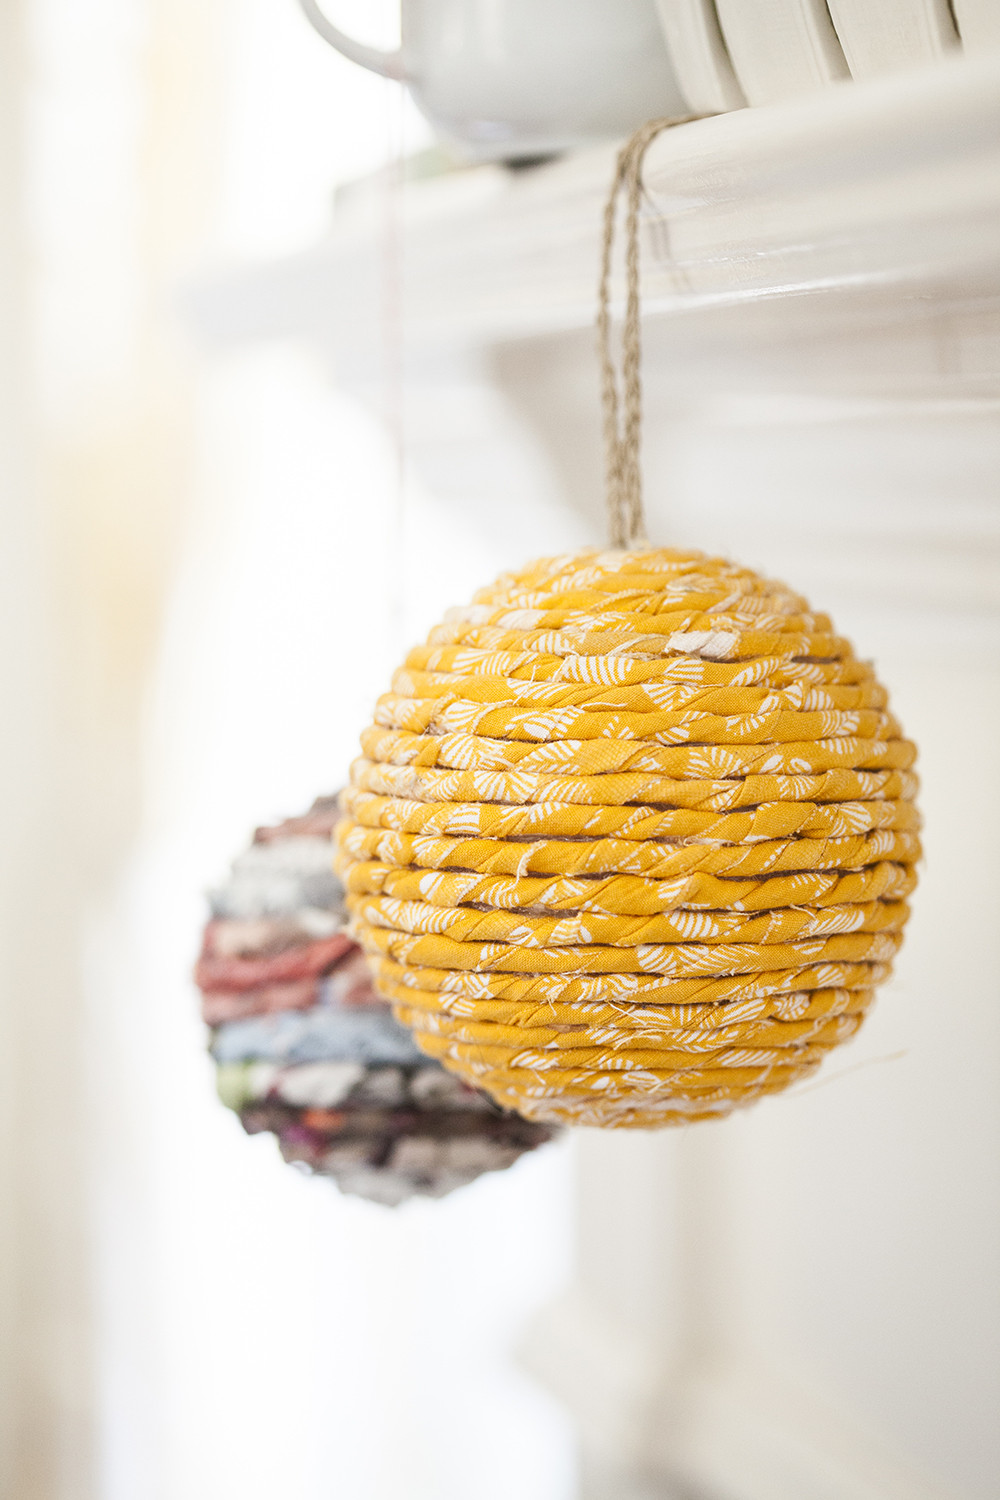 Best ideas about DIY Christmas Ornament Ideas . Save or Pin Easy DIY Wrapped Ball Ornament Now.